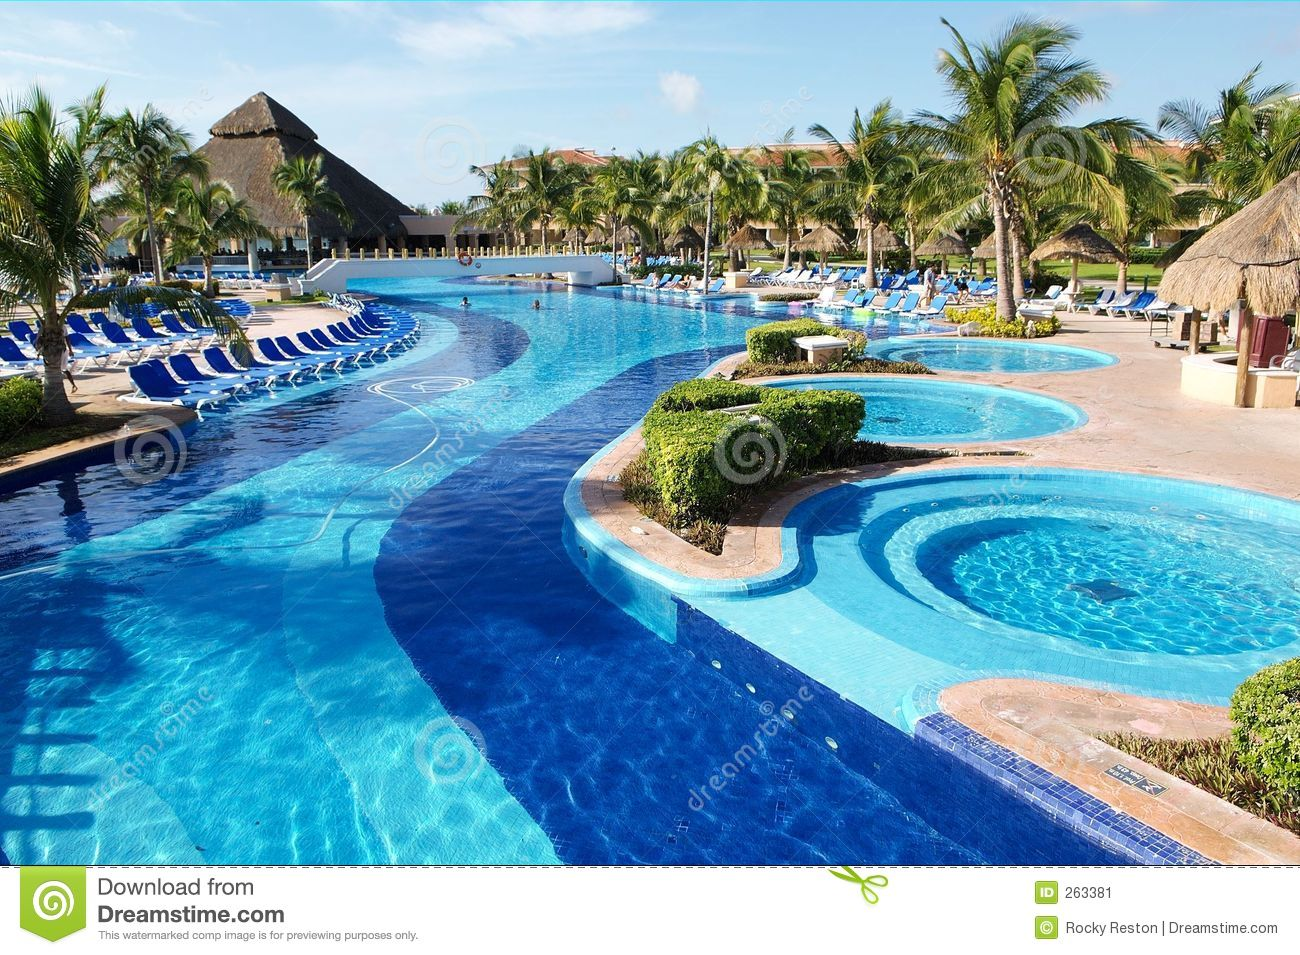 Pool And Jacuzzi Pool And Jacuzzi Stock Image Image Of Prosperity Loneliness 263381